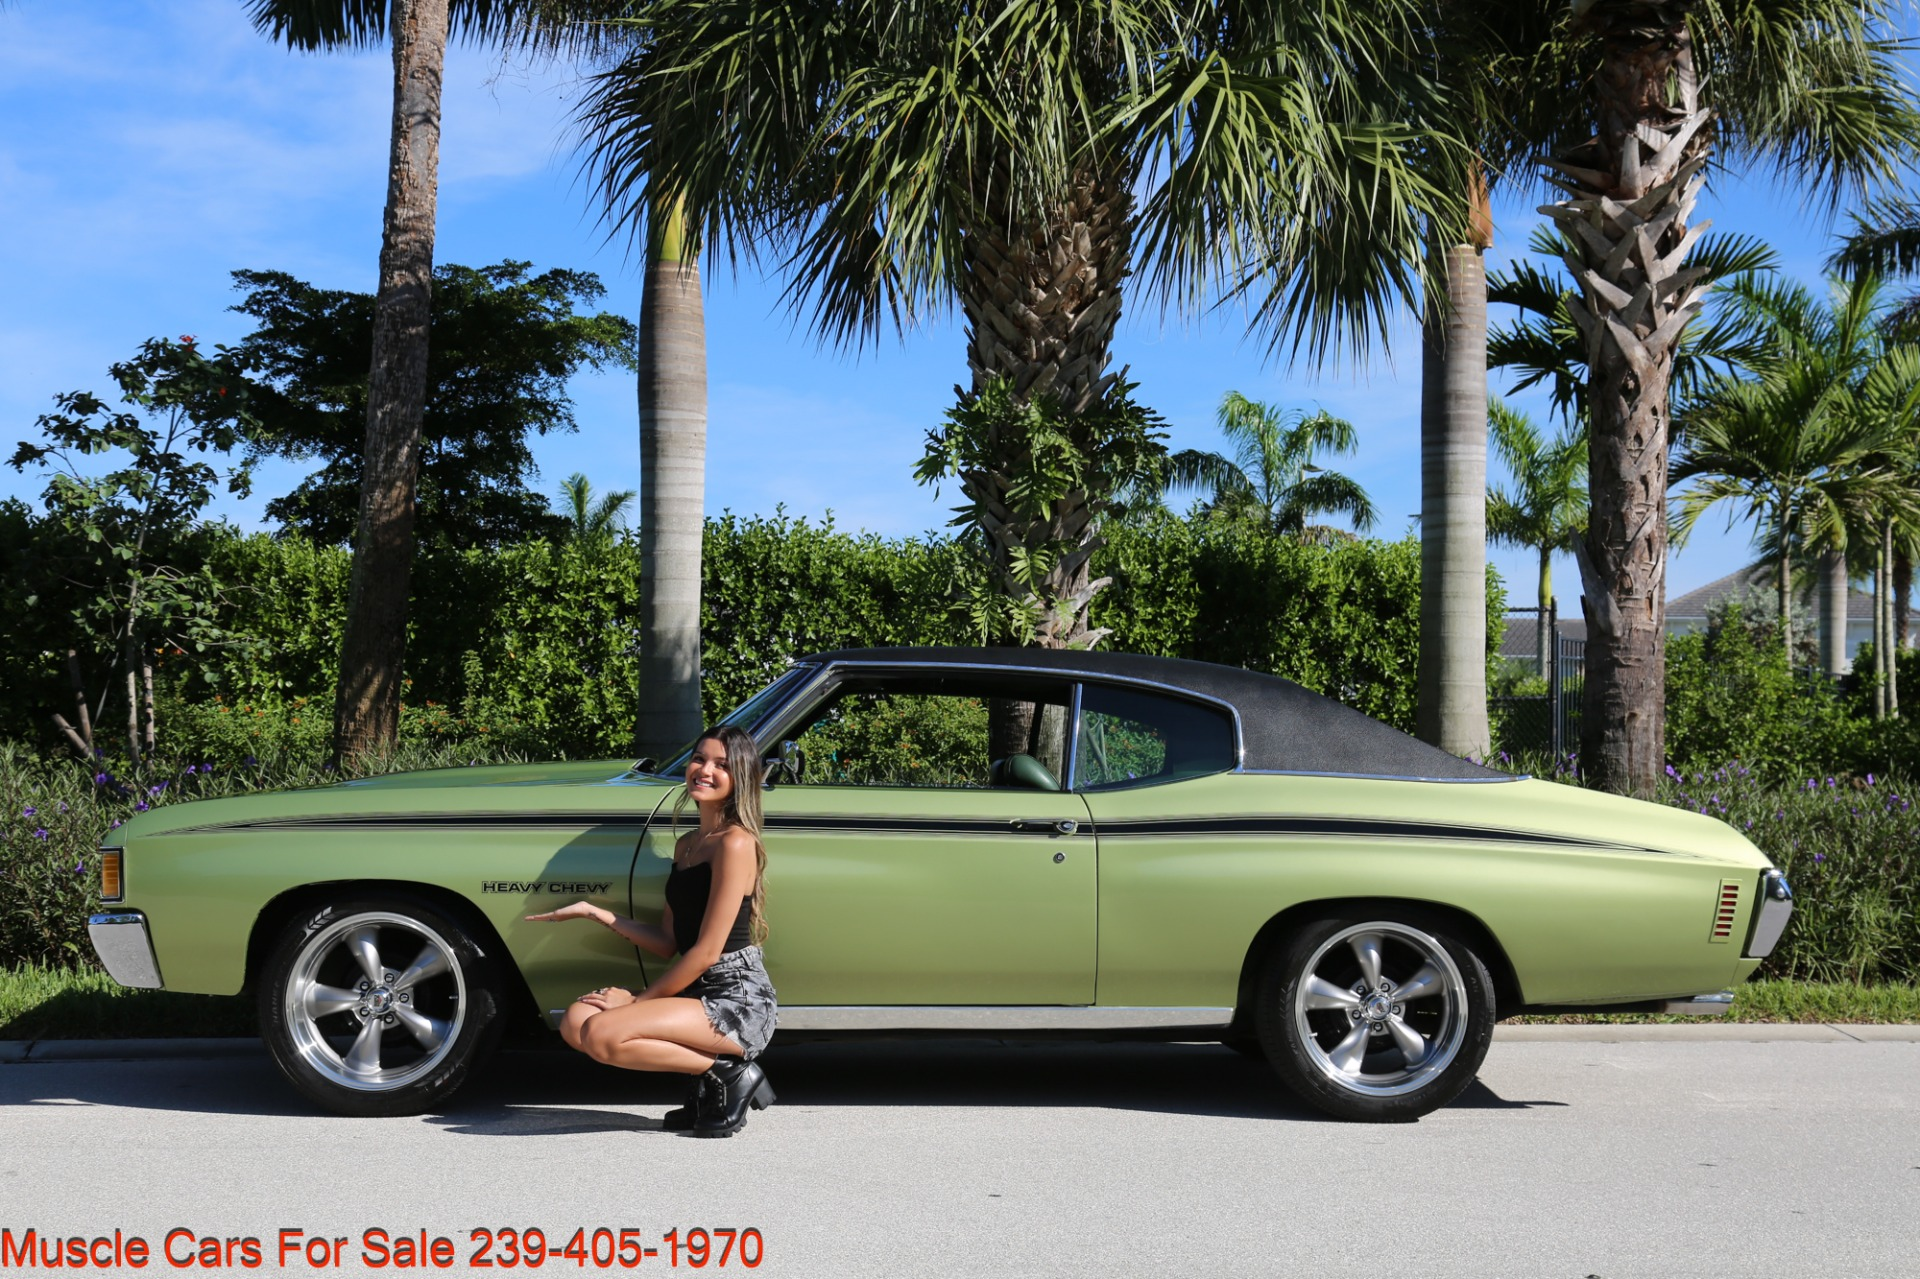 Used 1972 Chevrolet Chevelle Heavy Chevy Trim for sale $34,000 at Muscle Cars for Sale Inc. in Fort Myers FL 33912 5